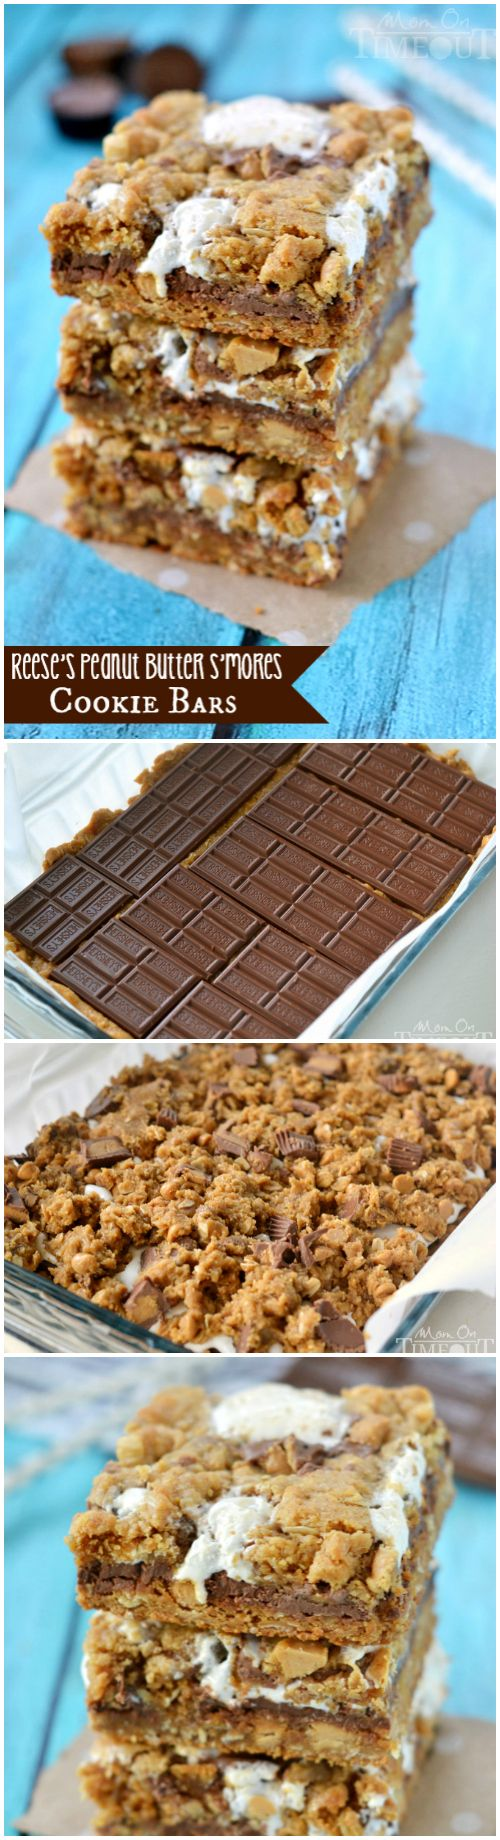 Reese's Peanut Butter S'mores Oatmeal Cookie Bars - total indulgence in each bite! | Dessert